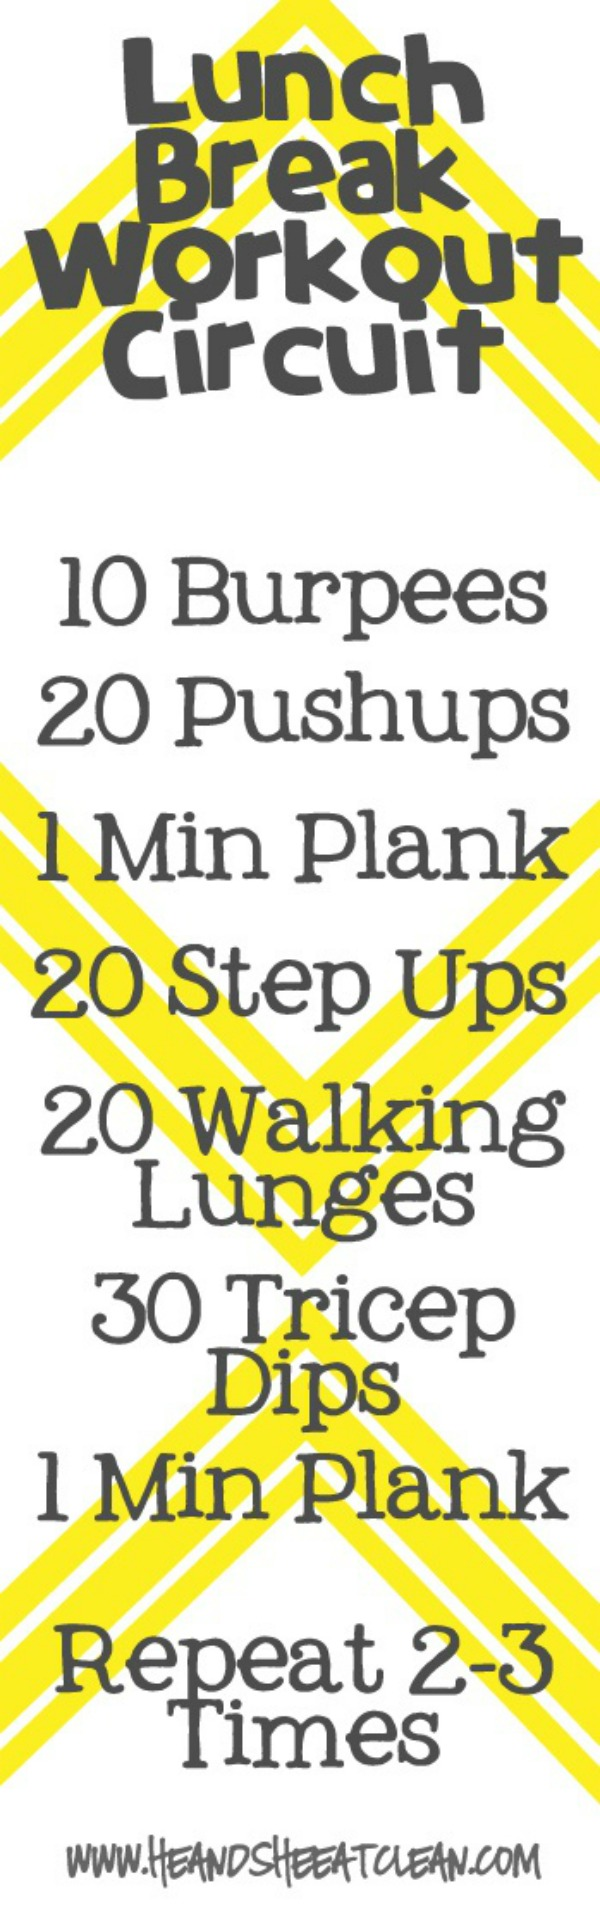 lunch break workout circuit